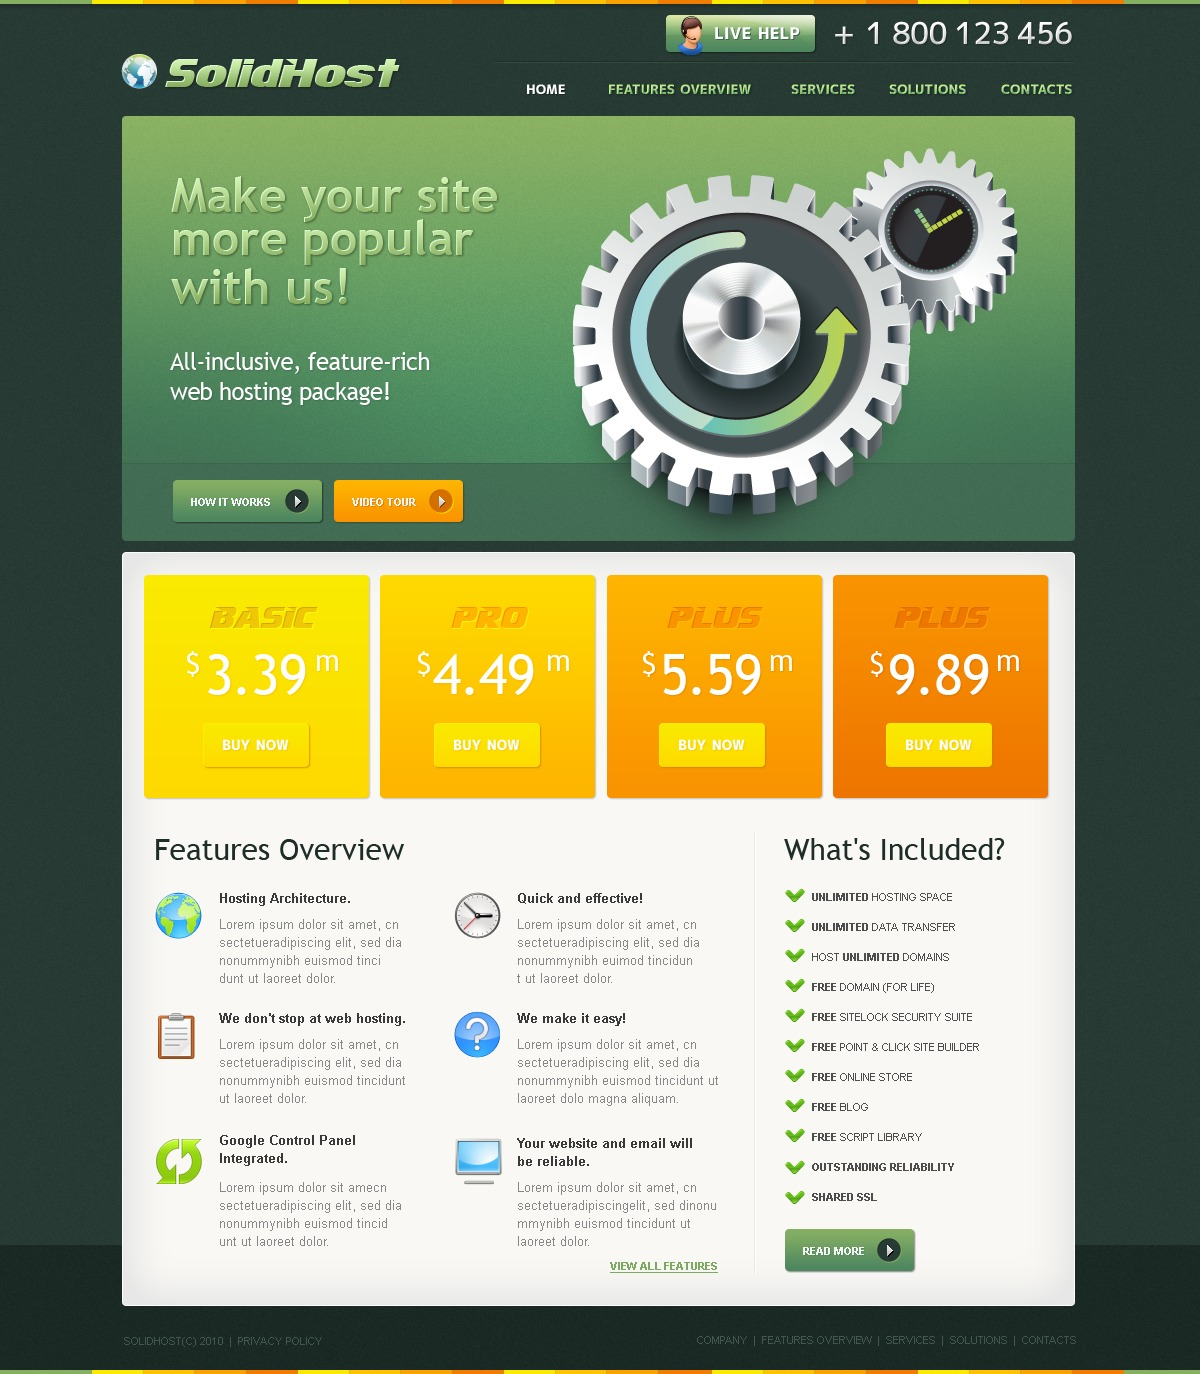 The Solidhost Hosting Company Solution PSD Design 54257, one of the best PSD templates of its kind (hosting, wide), also known as solidhost hosting company solution PSD template, domain PSD template, services PSD template, beginner PSD template, plan PSD template, standard PSD template, advanced PSD template, dedicated PSD template, workteam PSD template, tools PSD template, special offer PSD template, server PSD template, monitoring PSD template, management PSD template, account PSD template, activation PSD template, client PSD template, technology solution PSD template, data center provider PSD template, traffic PSD template, internet PSD template, web IT processor PSD template, spa and related with solidhost hosting company solution, domain, services, beginner, plan, standard, advanced, dedicated, workteam, tools, special offer, server, monitoring, management, account, activation, client, technology solution, data center provider, traffic, internet, web IT processor, spa, etc.